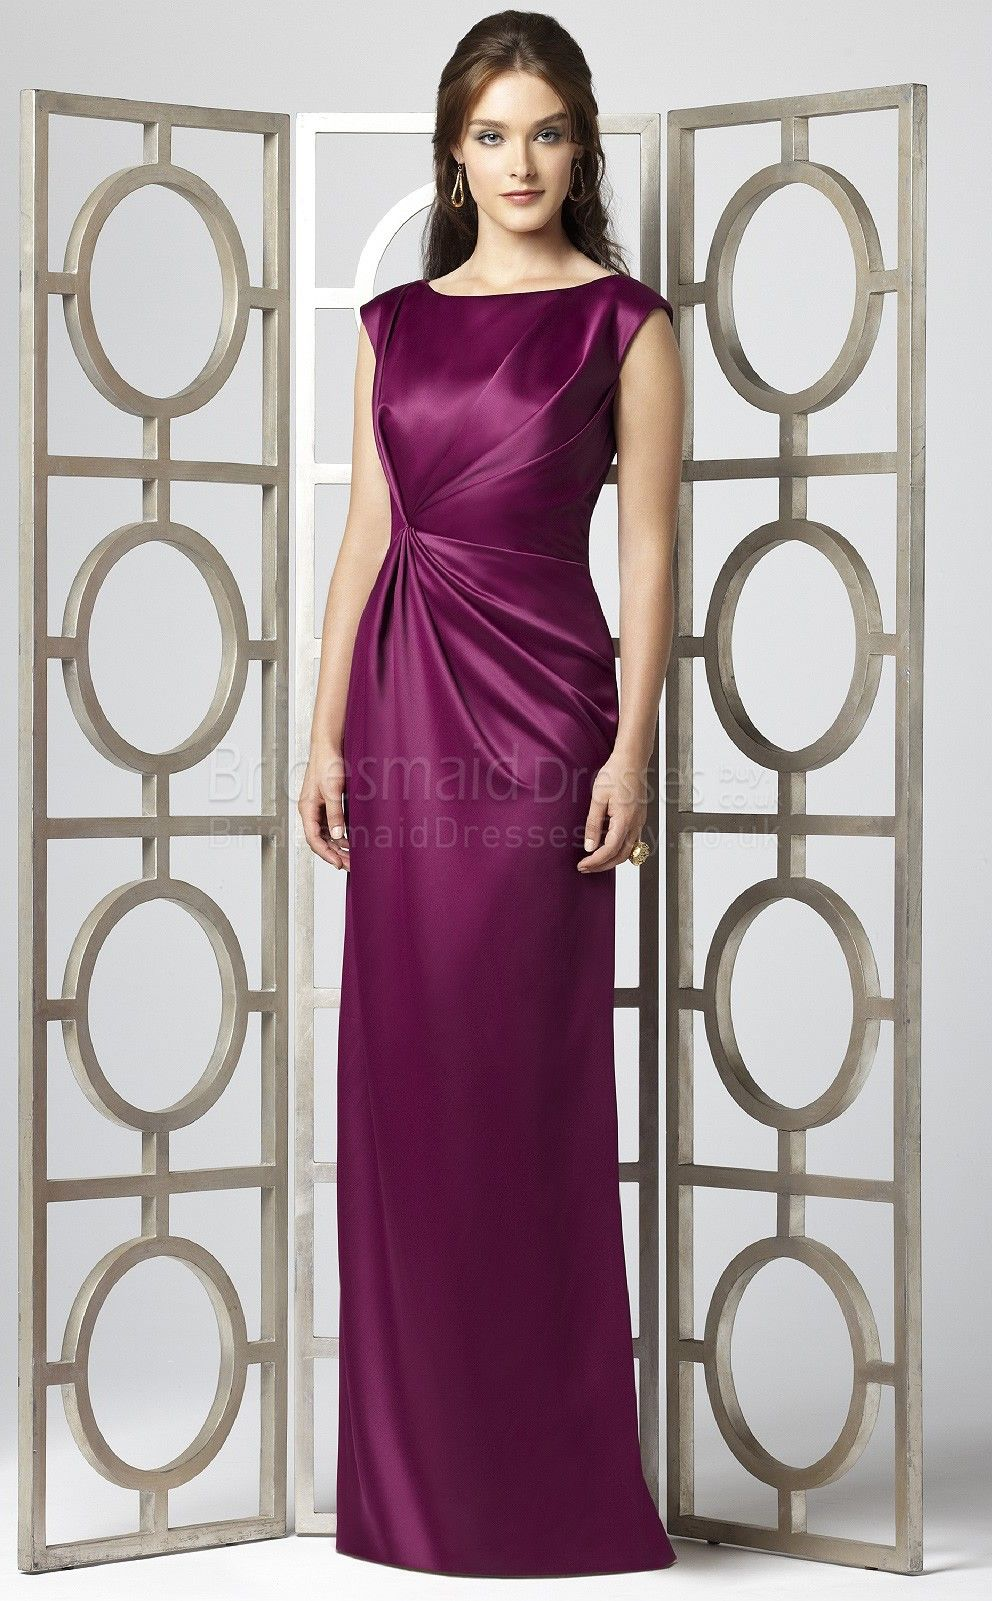 Sheath/Column Short Sleeve Scoop Fuchsia Stretch Satin Floor-length ...